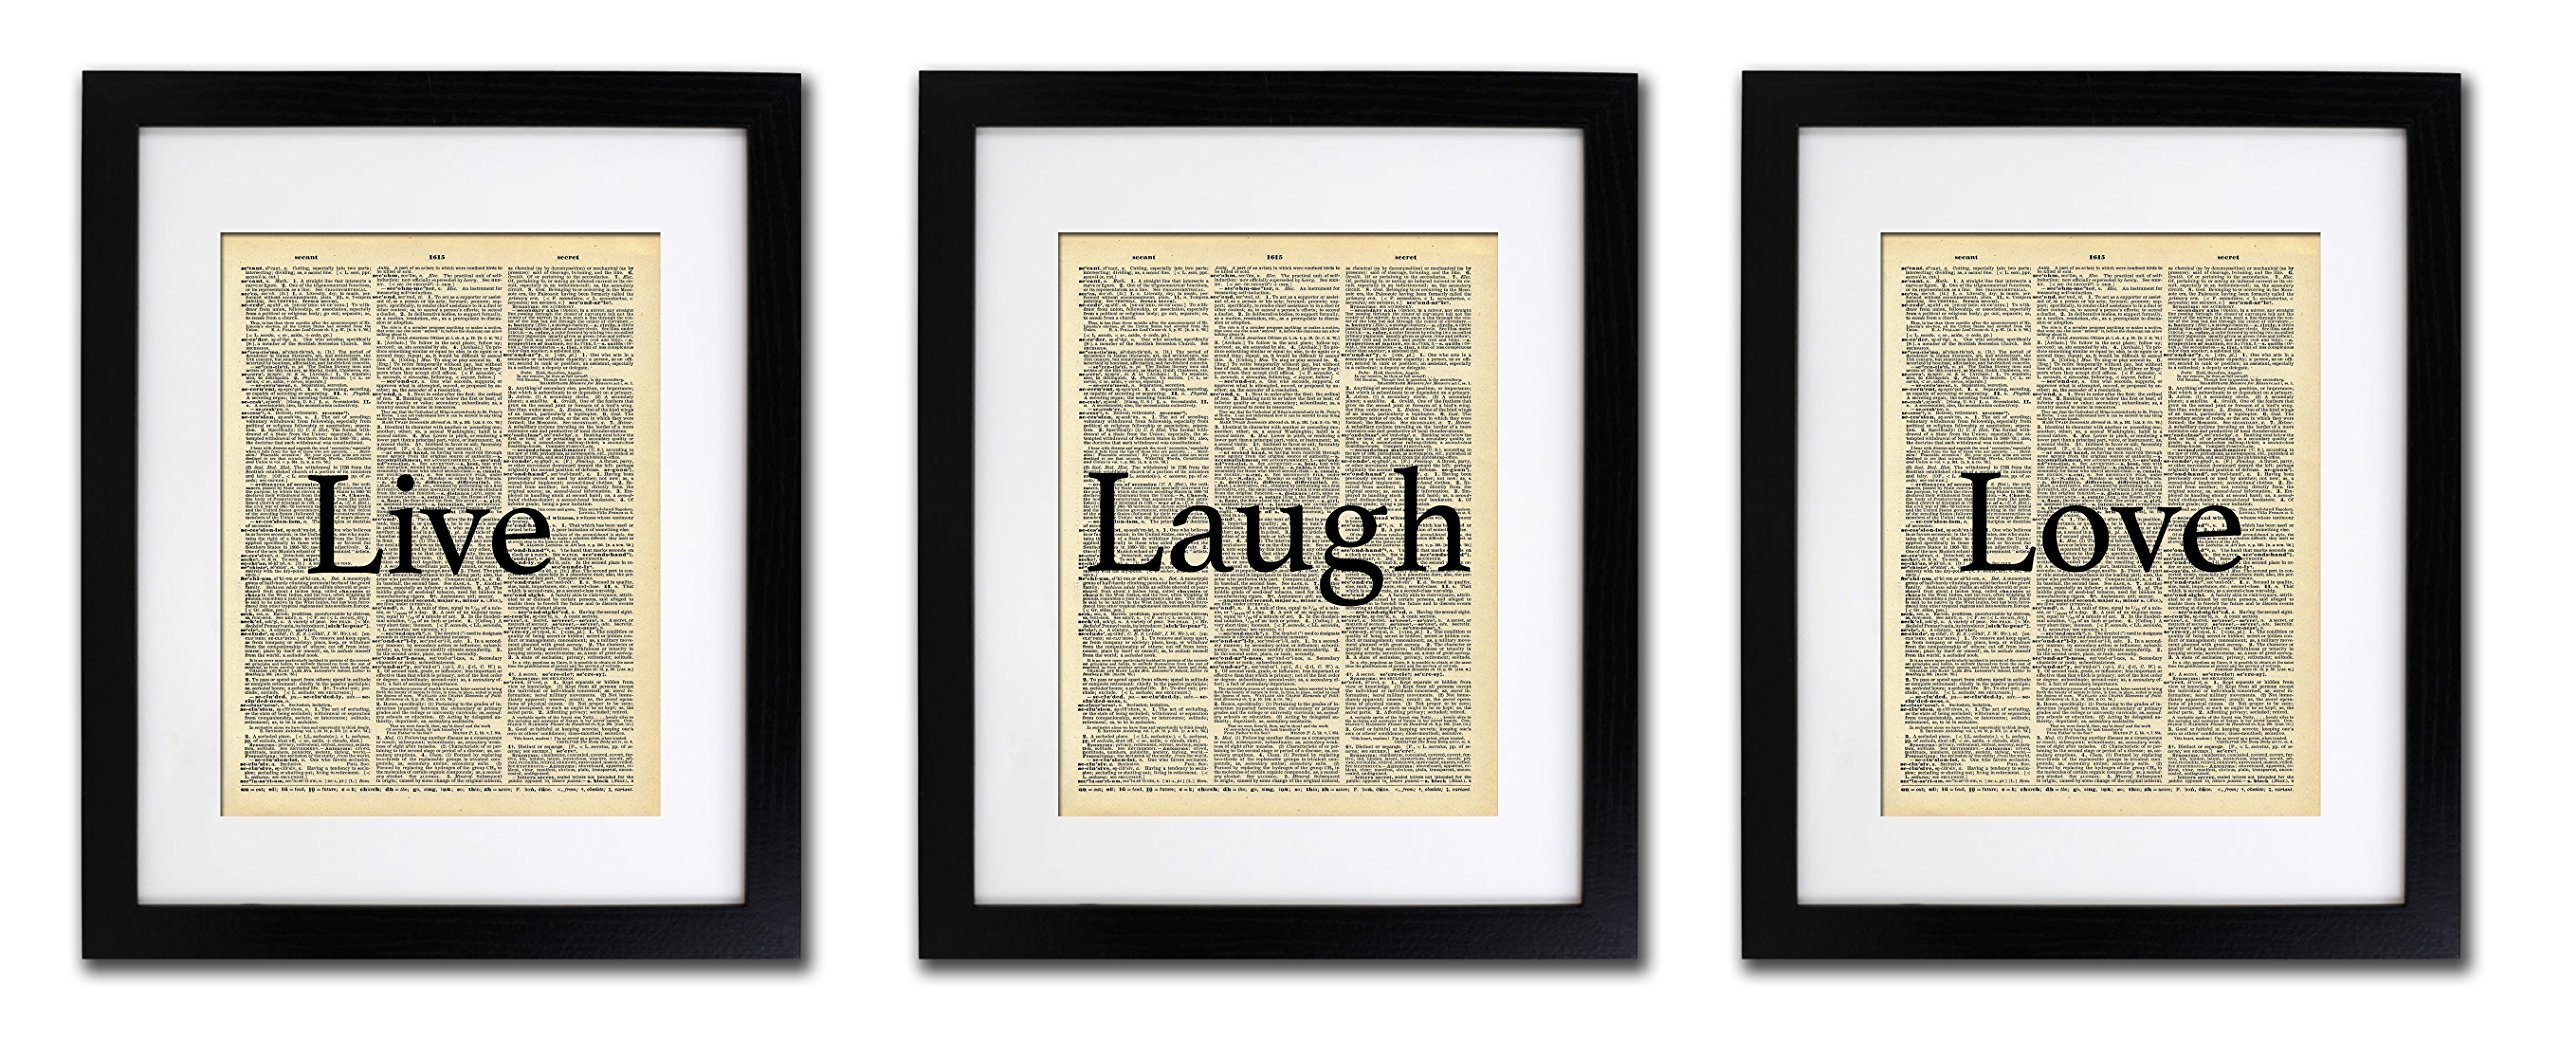 Live Laugh Love - 3 Print Set - Vintage Dictionary Print 8x10 inch Home Vintage Art Abstract Prints Wall Art for Home Decor Wall Decorations For Living Room Bedroom Office Ready-to-Frame